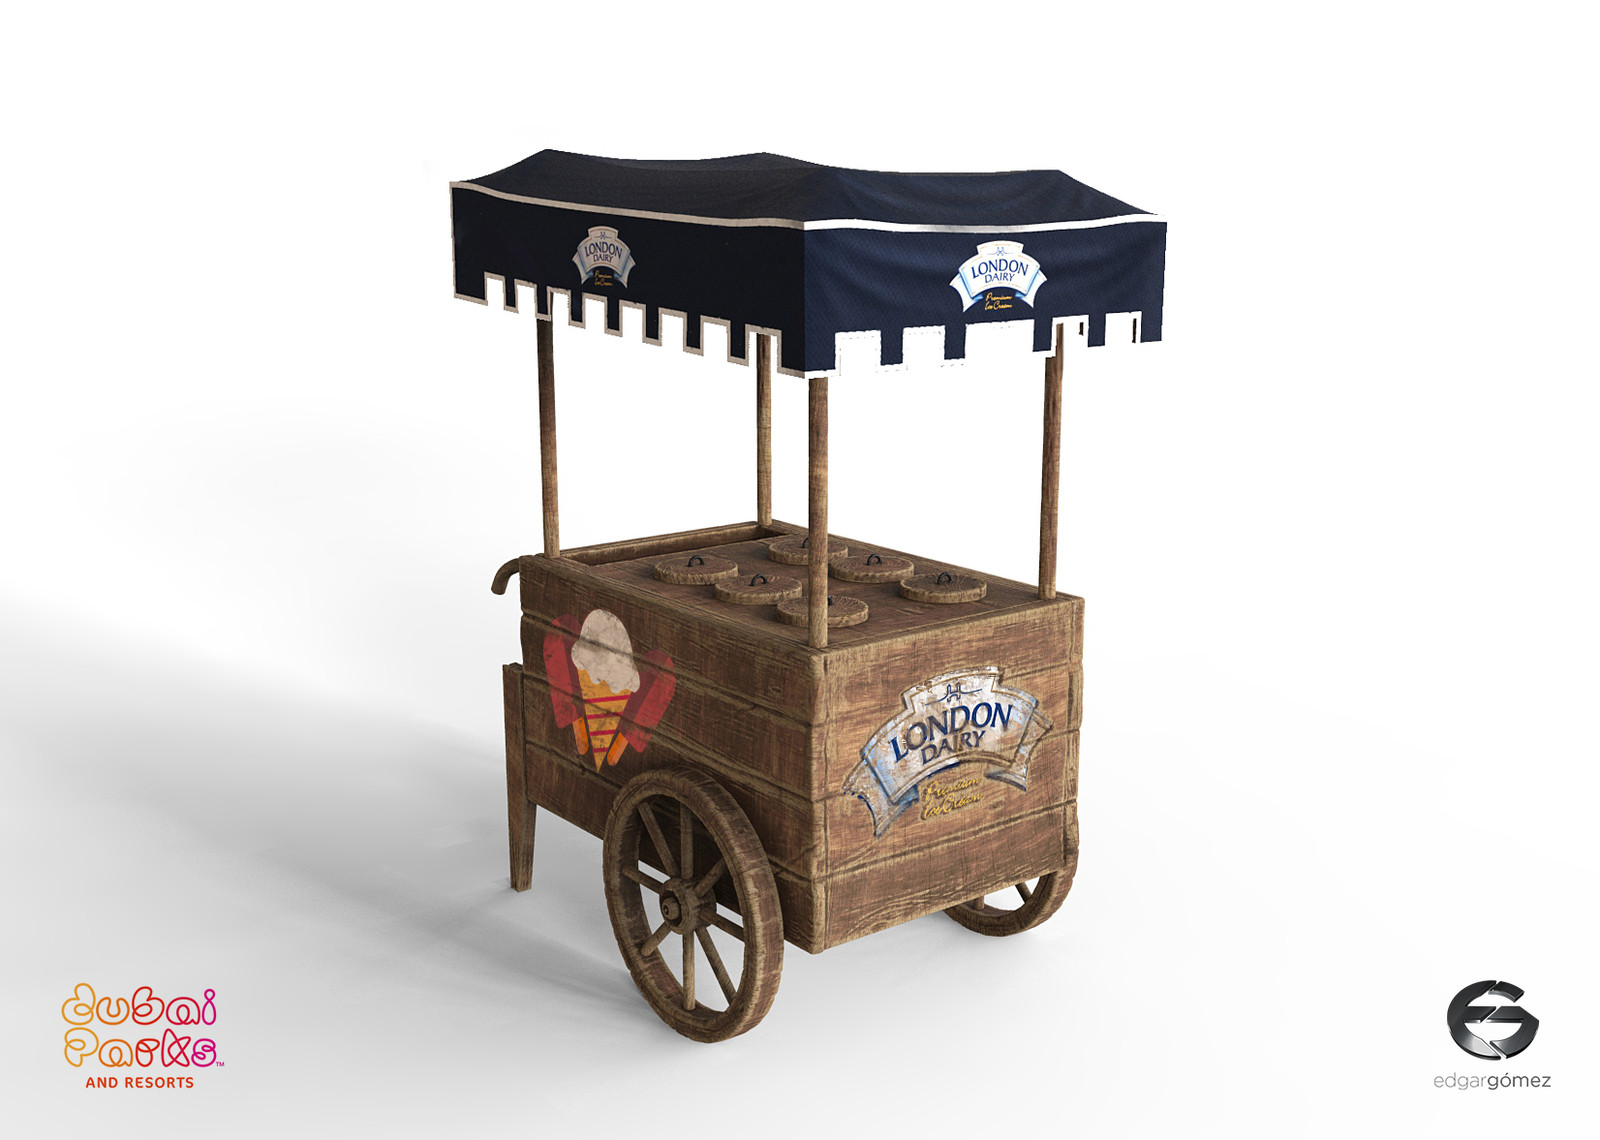 Medieval Ice Cream Trolley